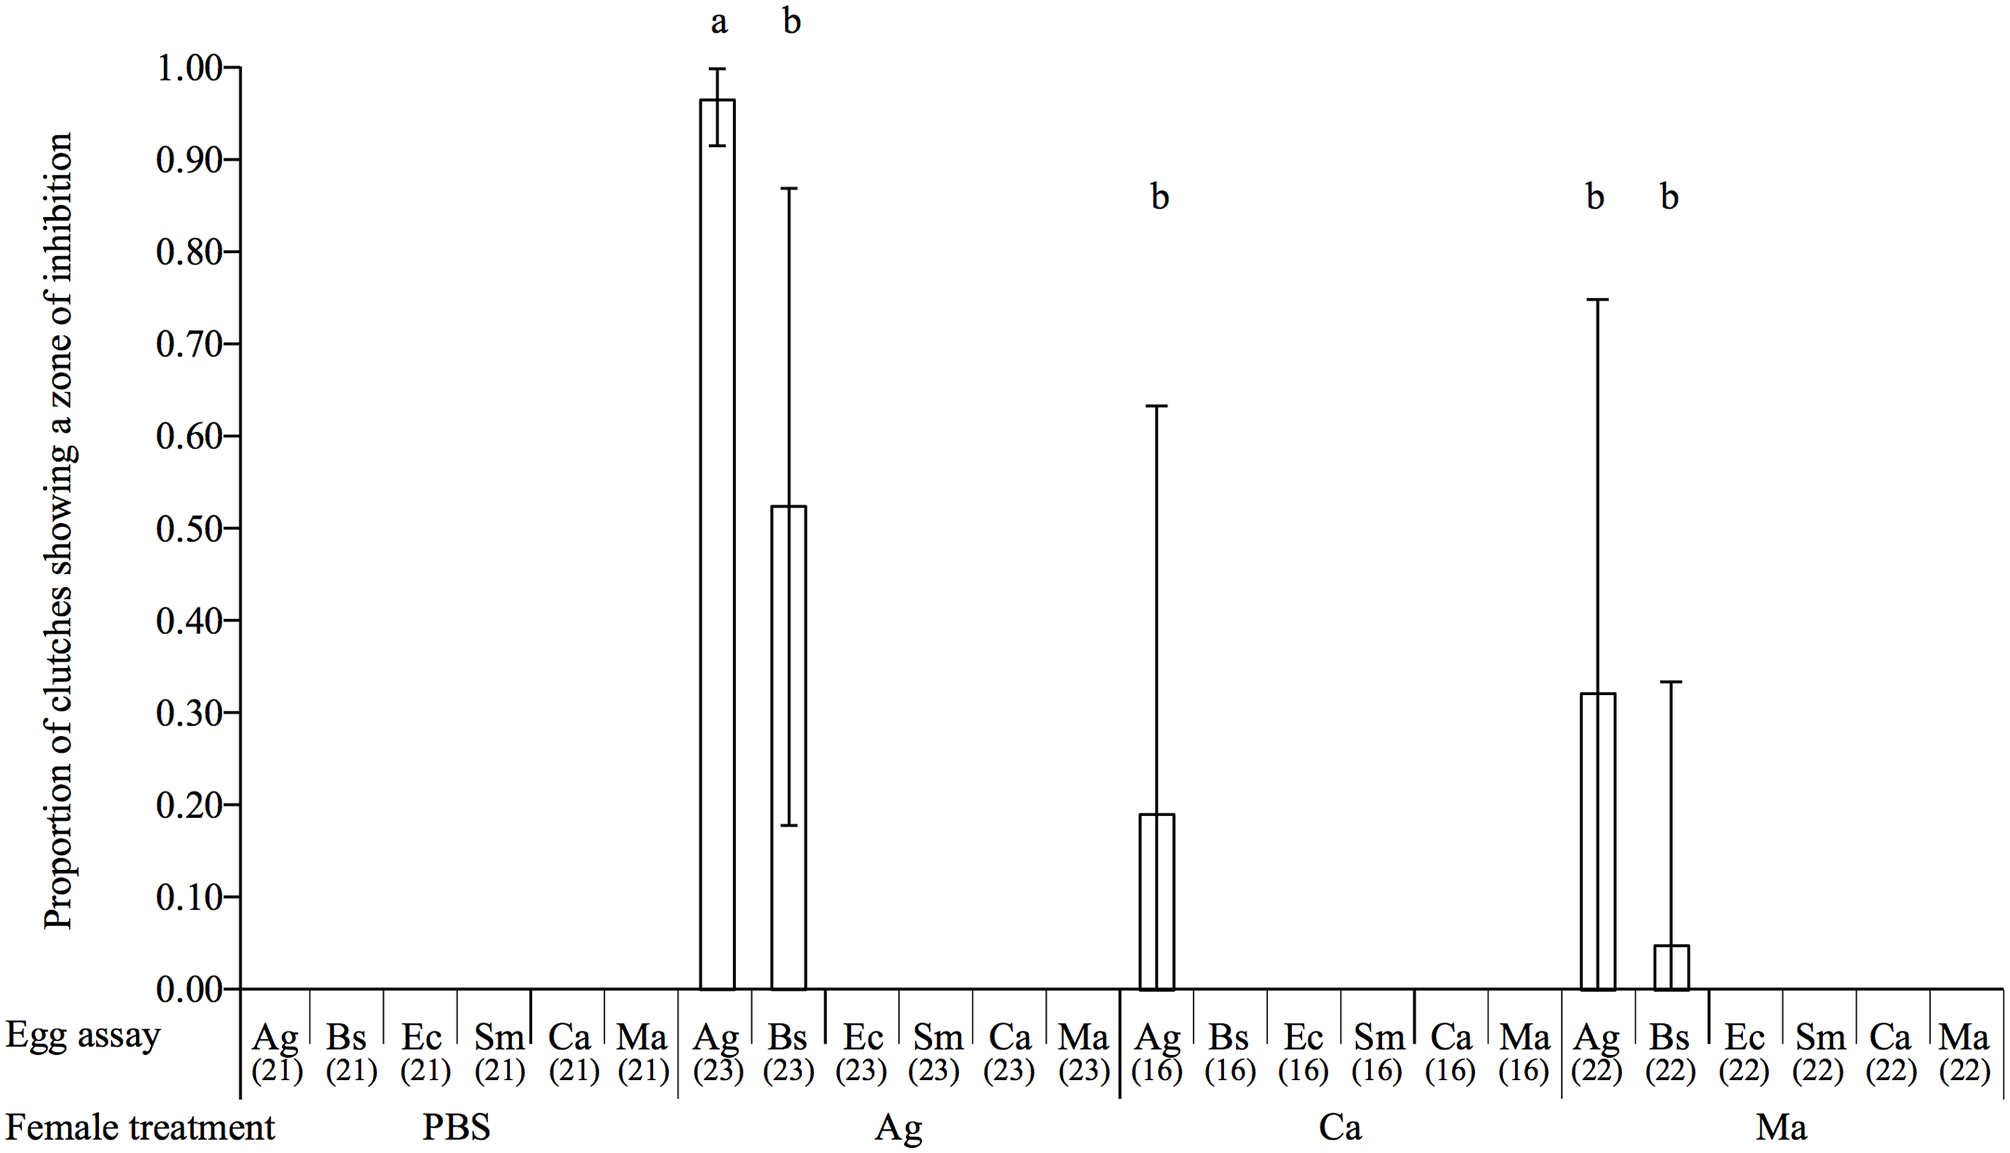 Barplot showing the mean proportion of egg extracts showing a zone of inhibition according to the microorganism on which they were tested (egg assay) and the maternal microbial treatment.